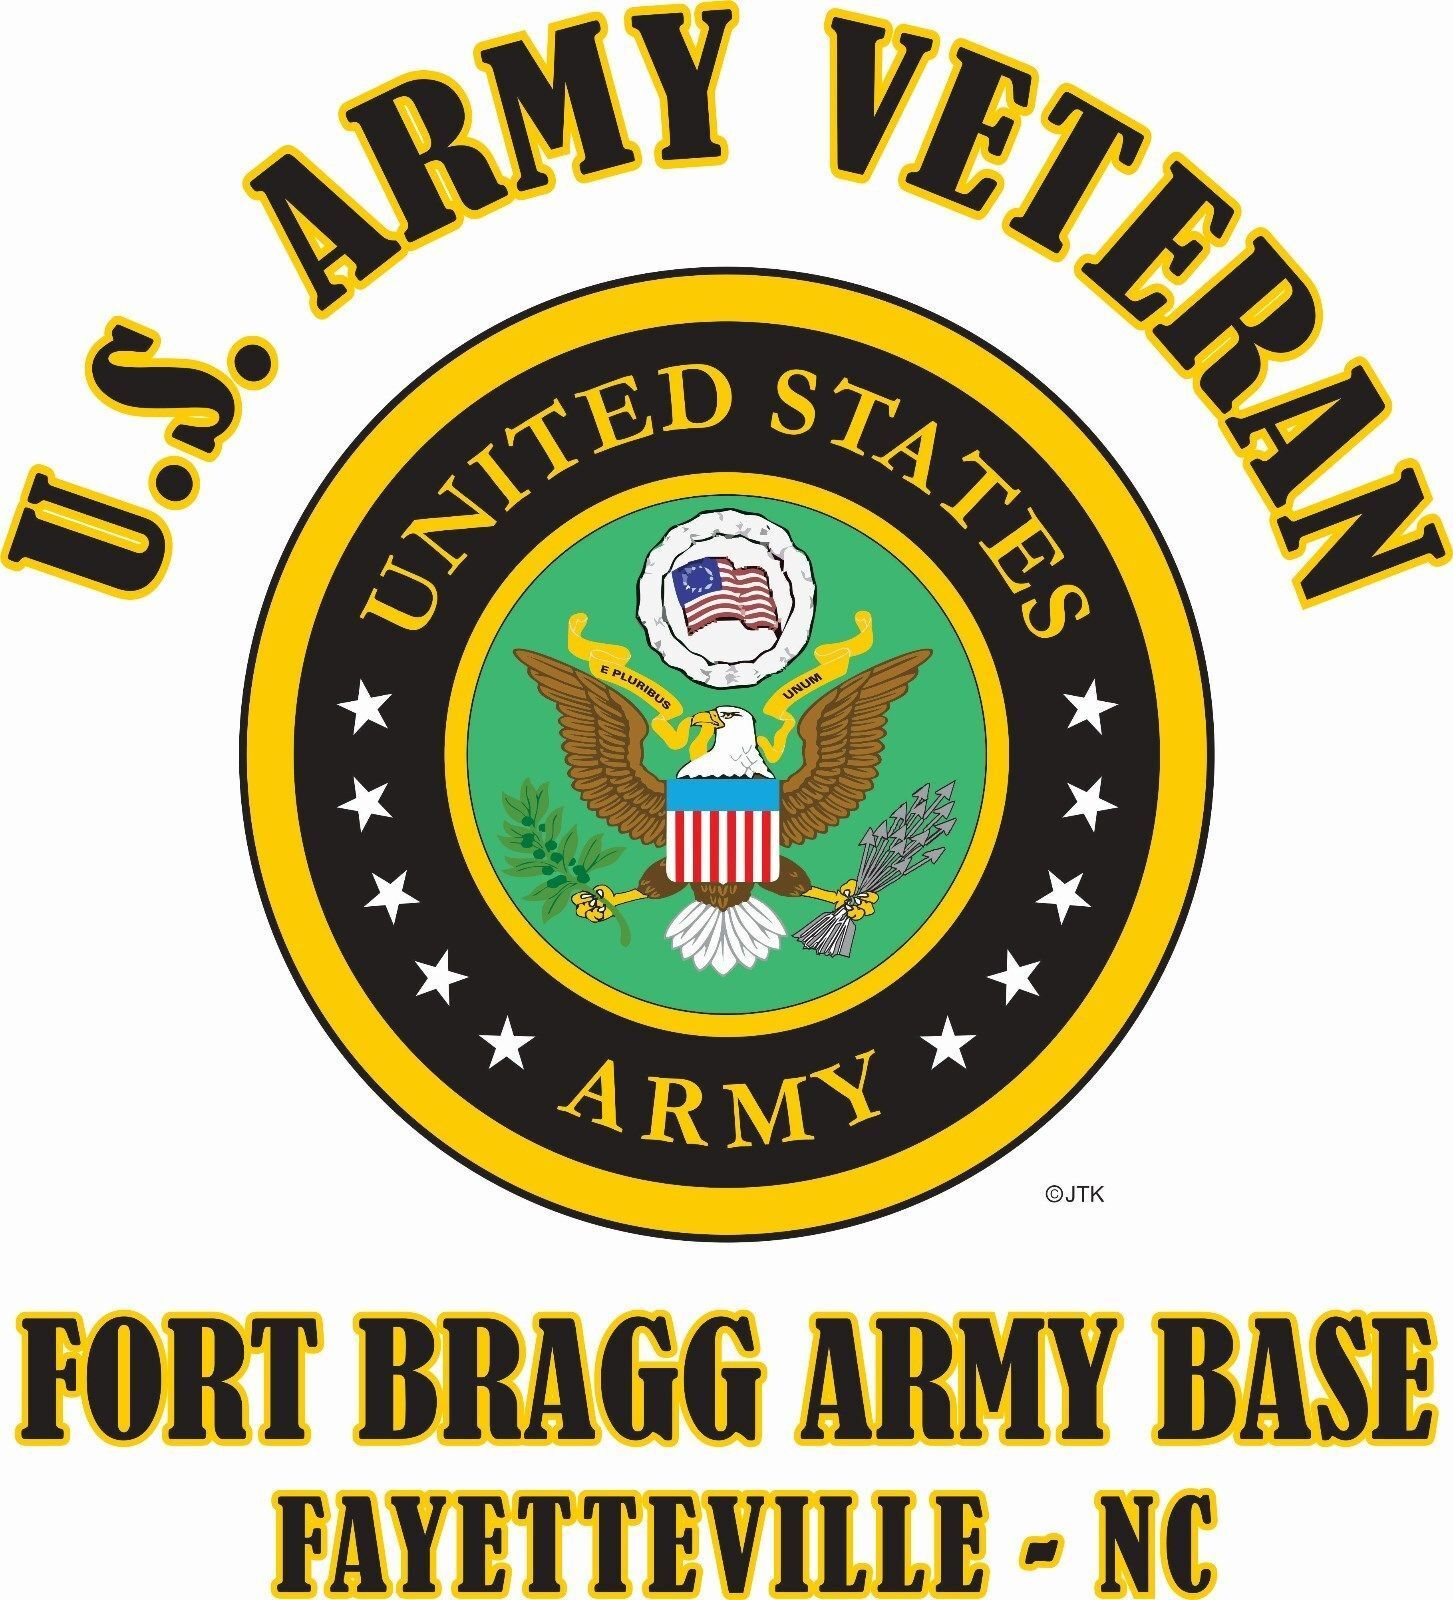 Fort Bragg Army Base Fayetteville-ncu.s.army Veteran W/ar...